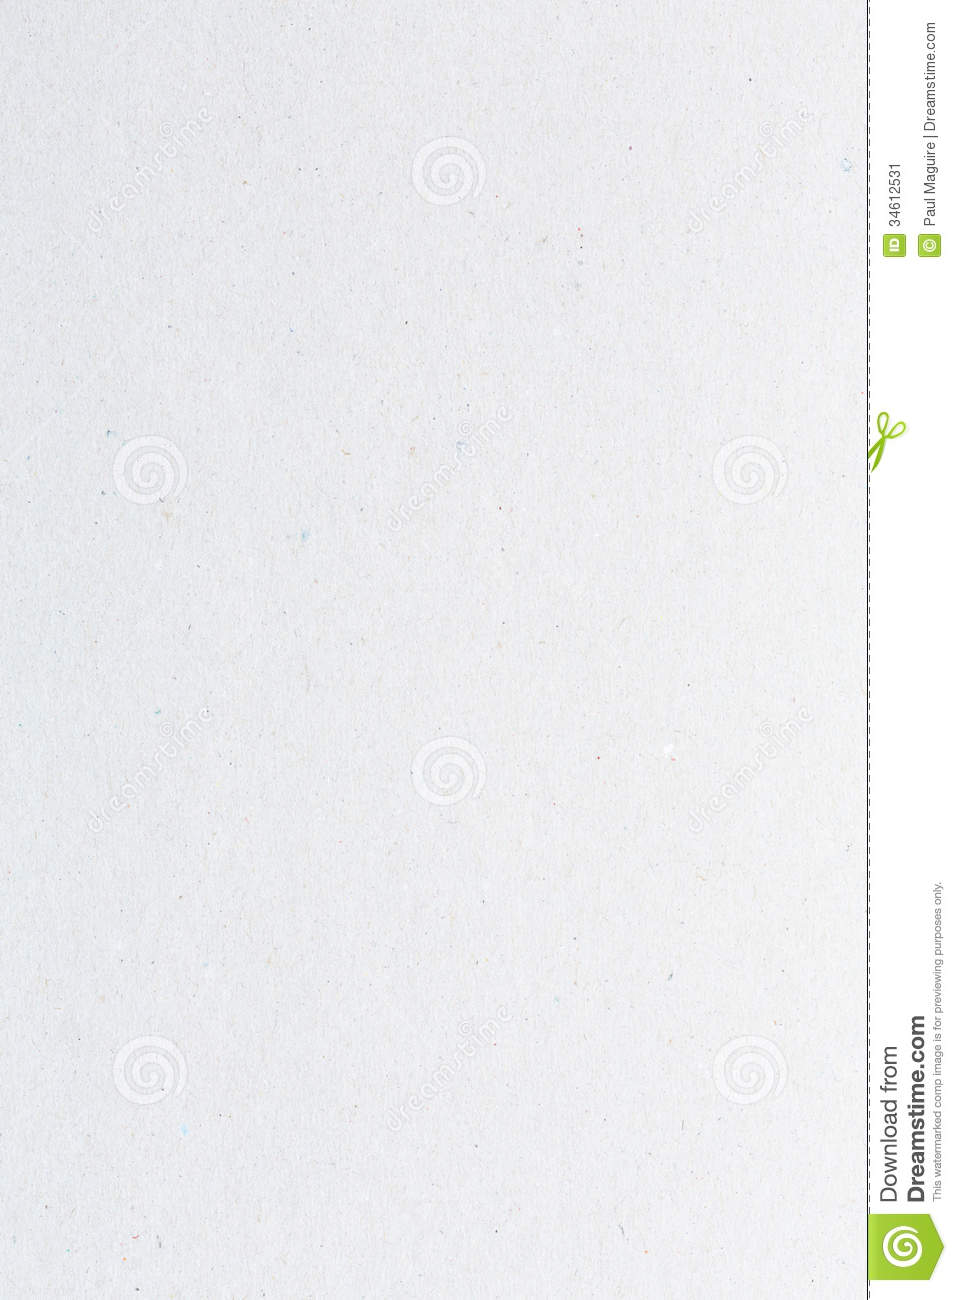 Card Texture Stock Image - Image: 34612531